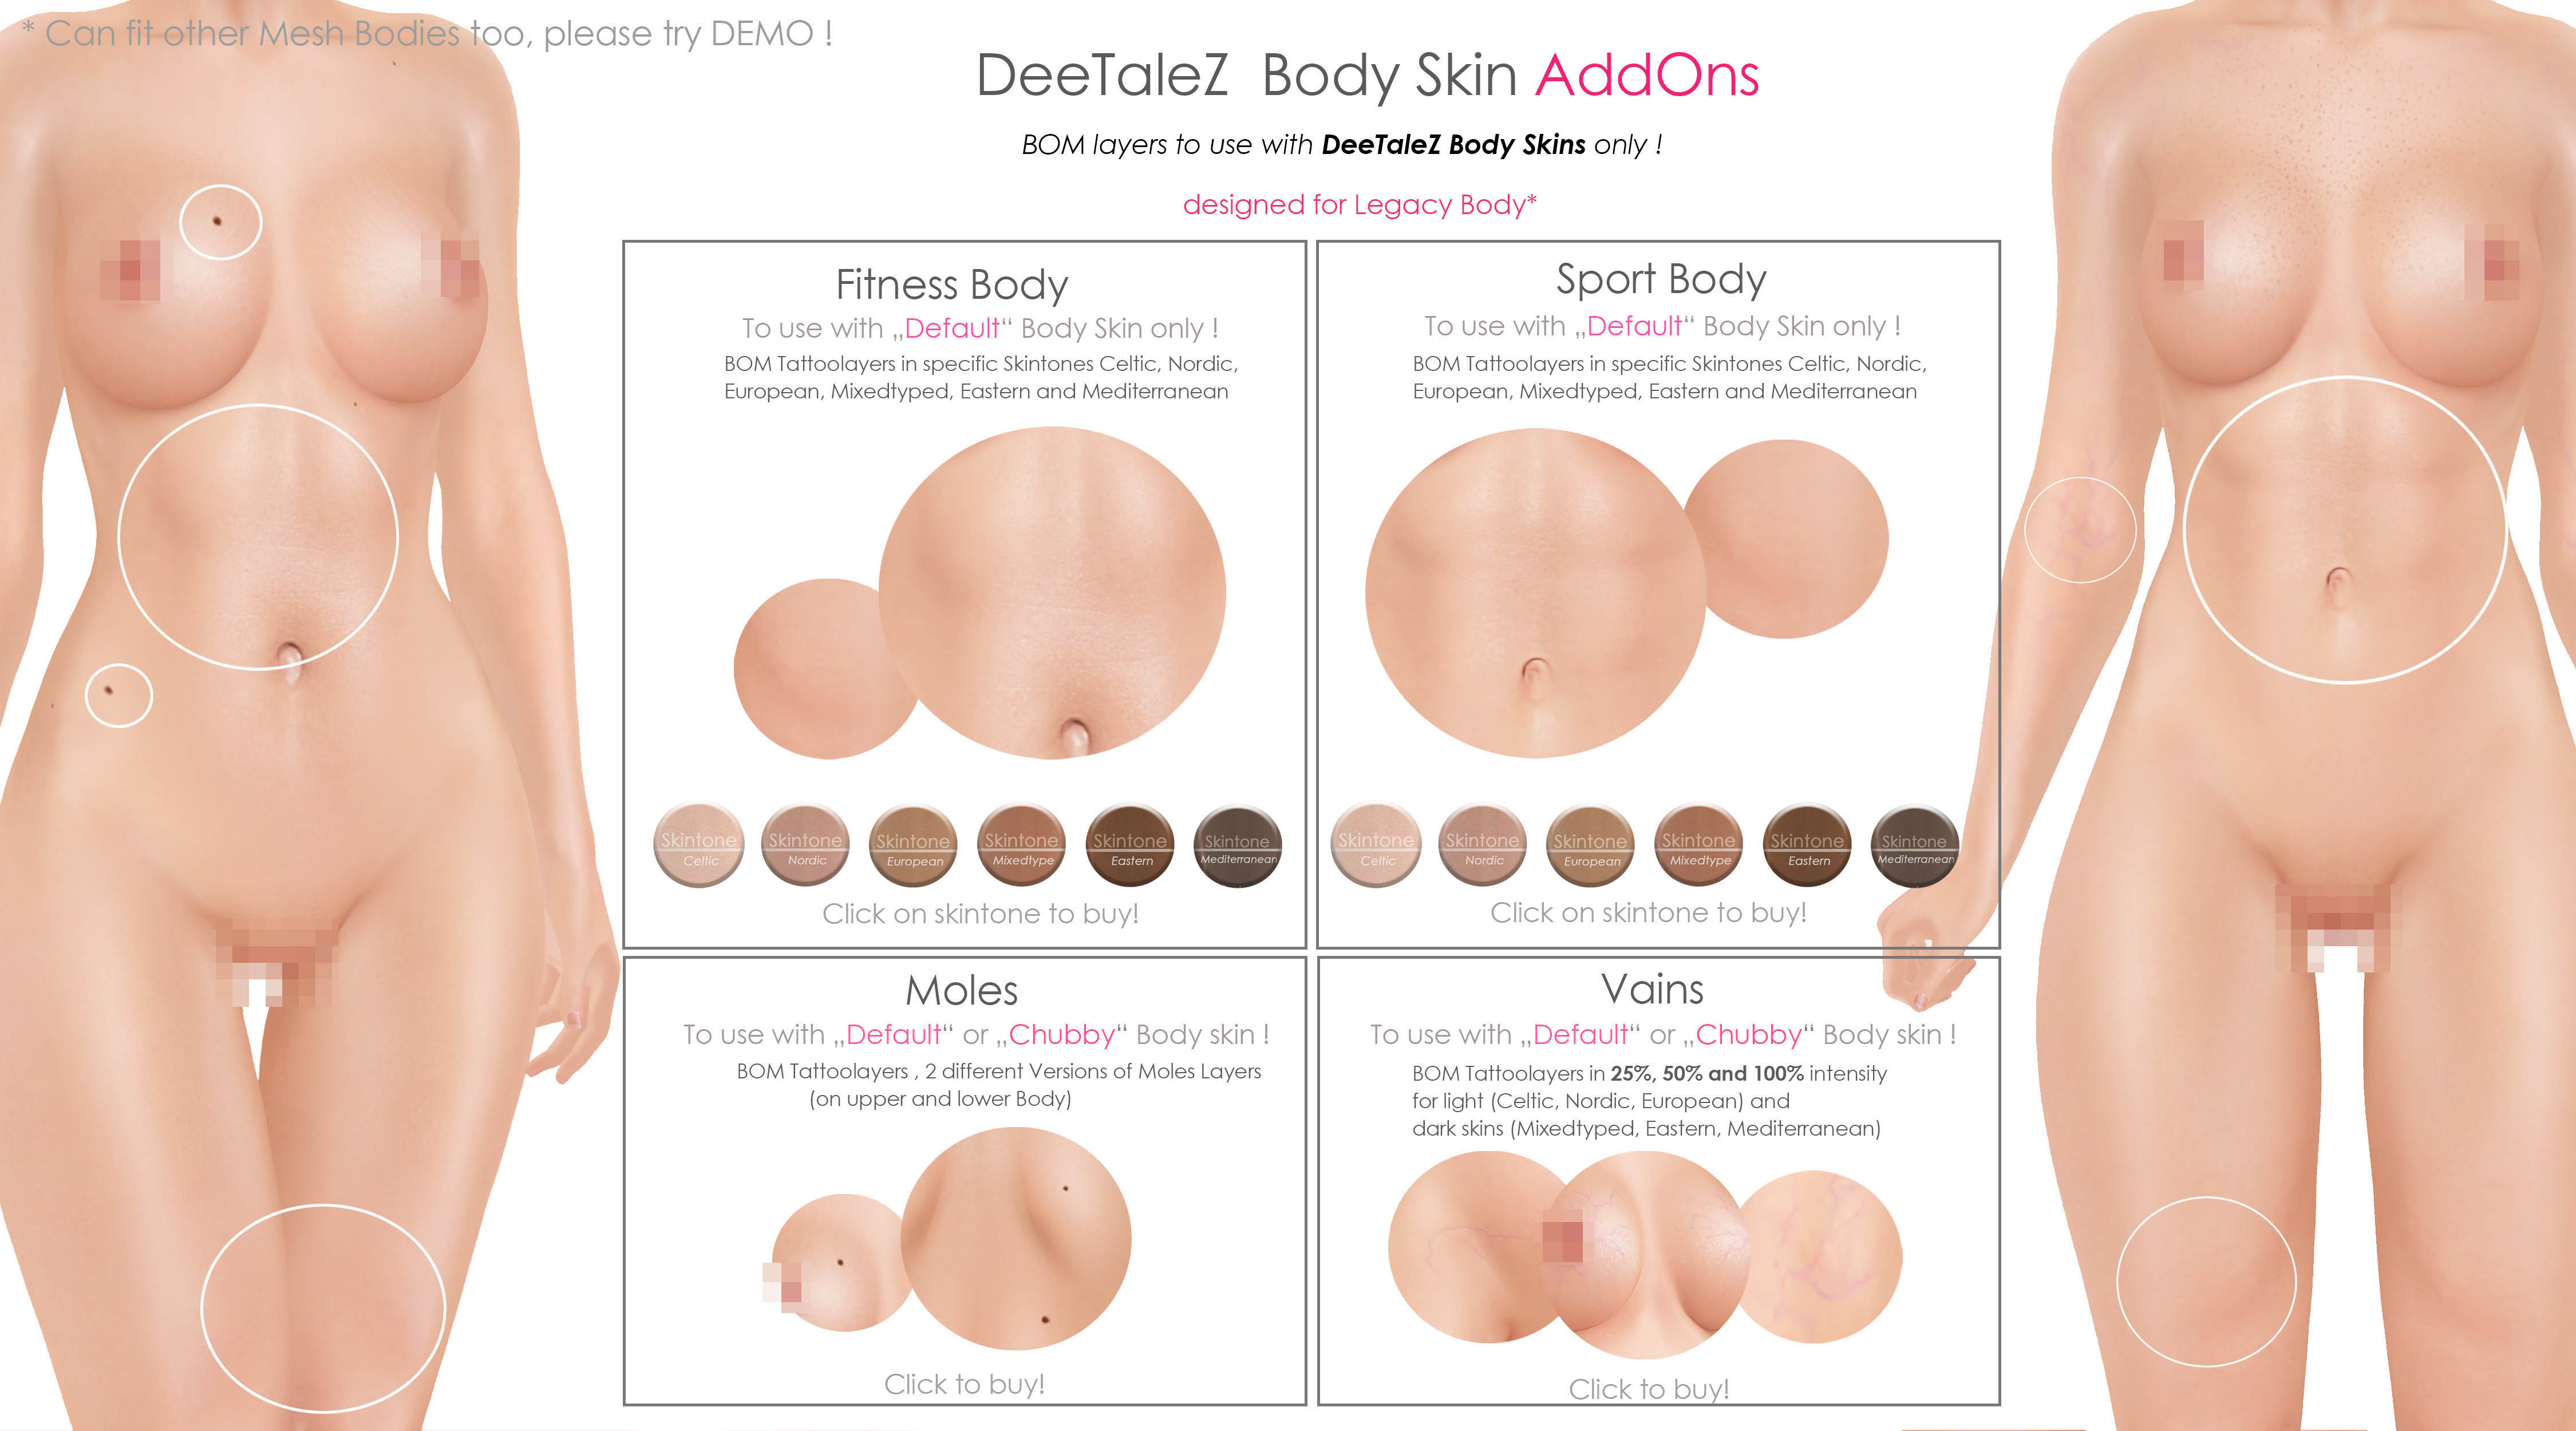 BODY ADDONS VENDOR default skin FIT and SPORT PG